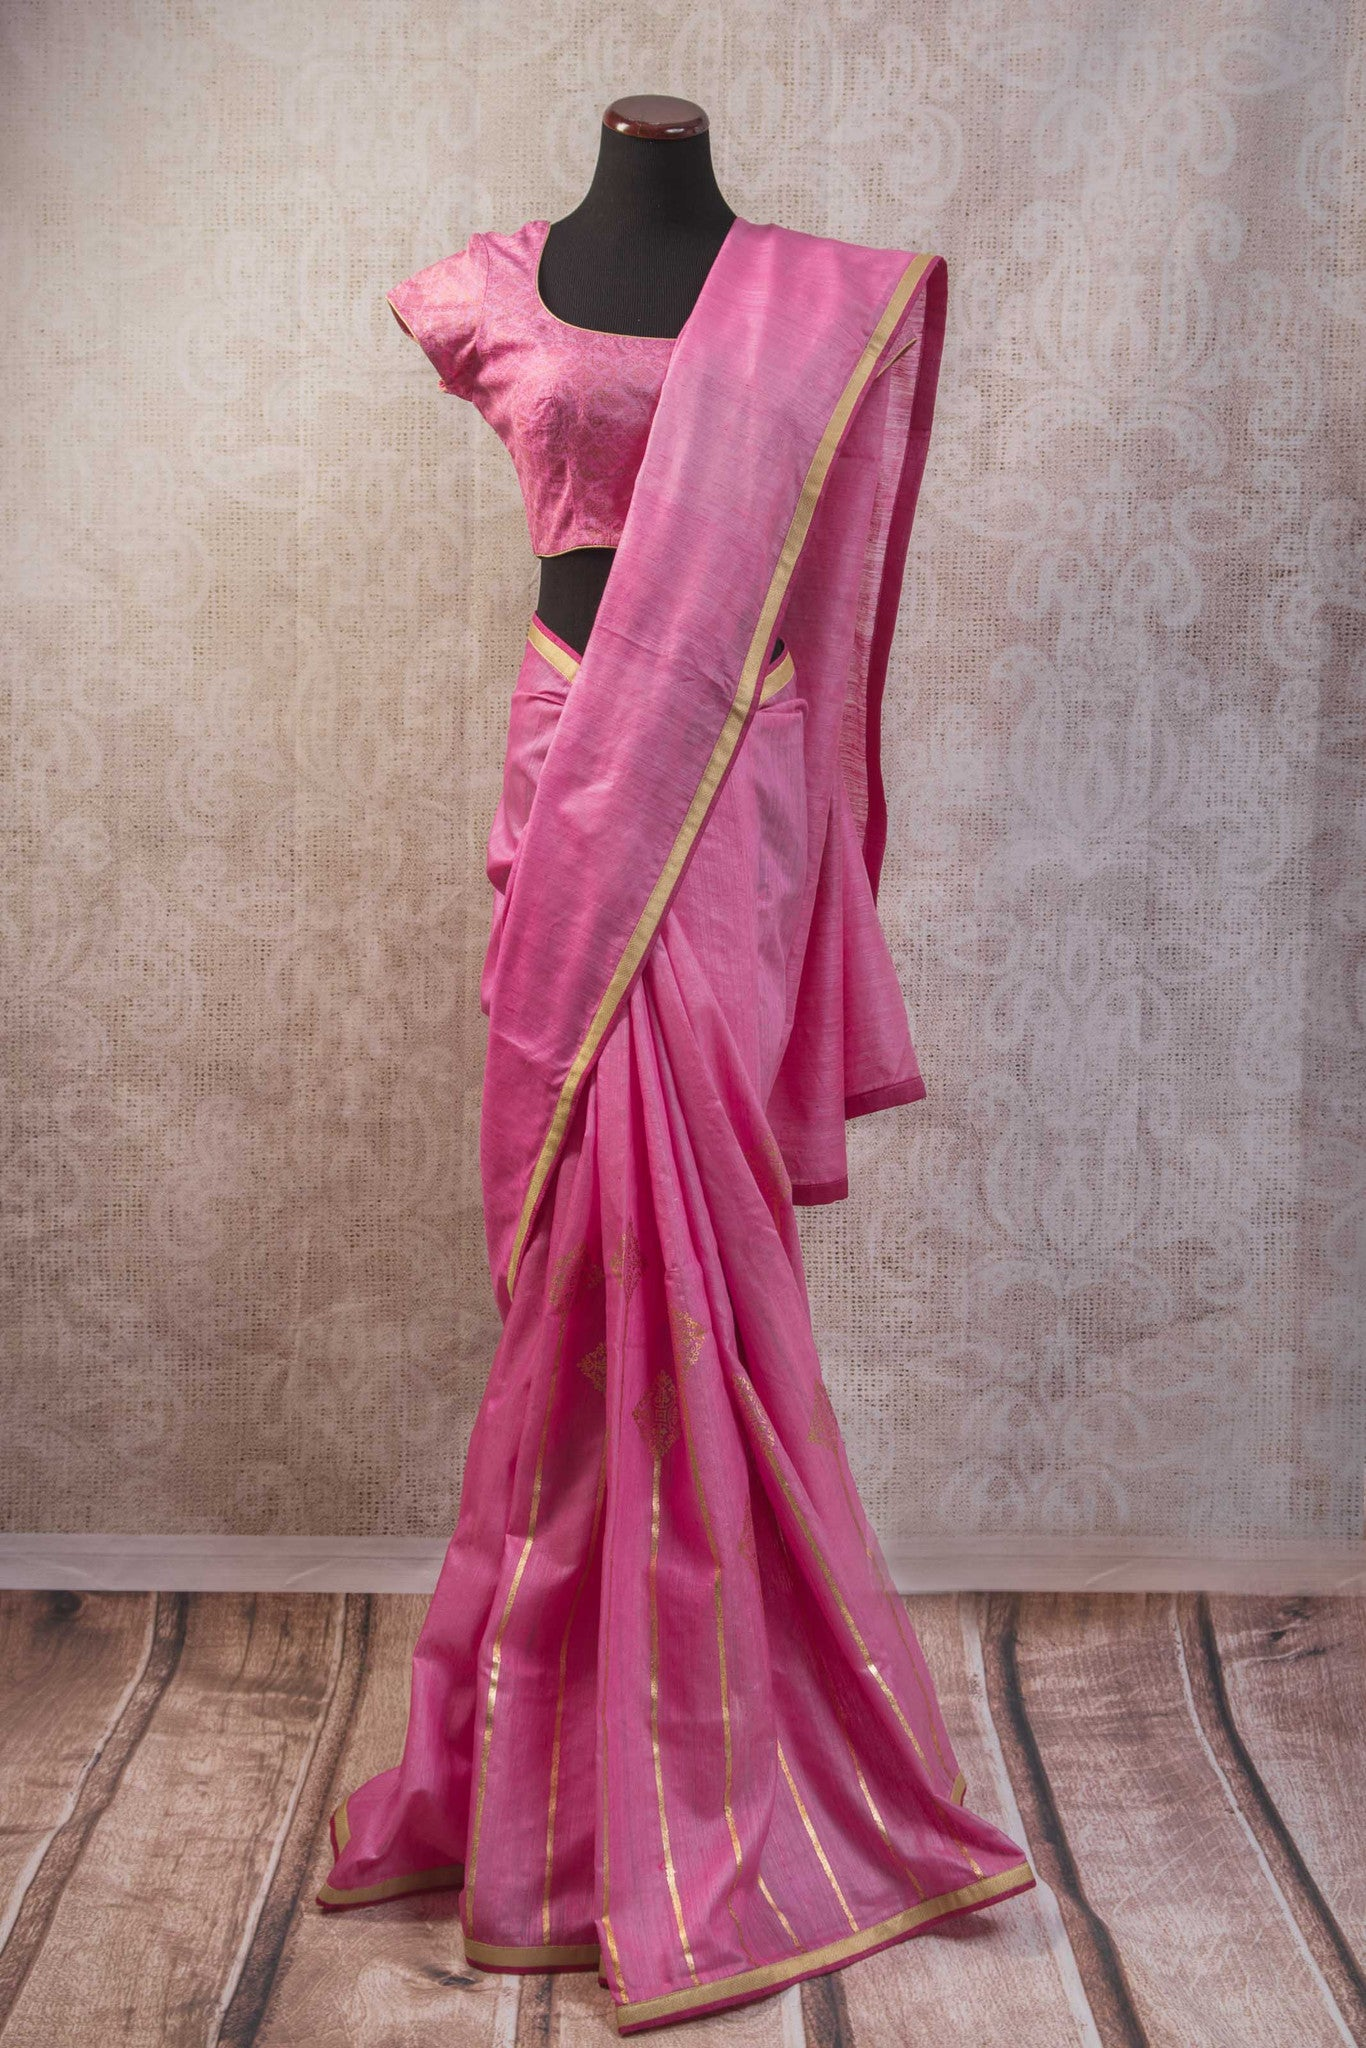 90b839 Matka silk saree with khari print and golden border. This lovely pink saree comes with stitched blouse and can be bought online at our ethnic clothing store in USA and is perfect for Indian wedding and functions.